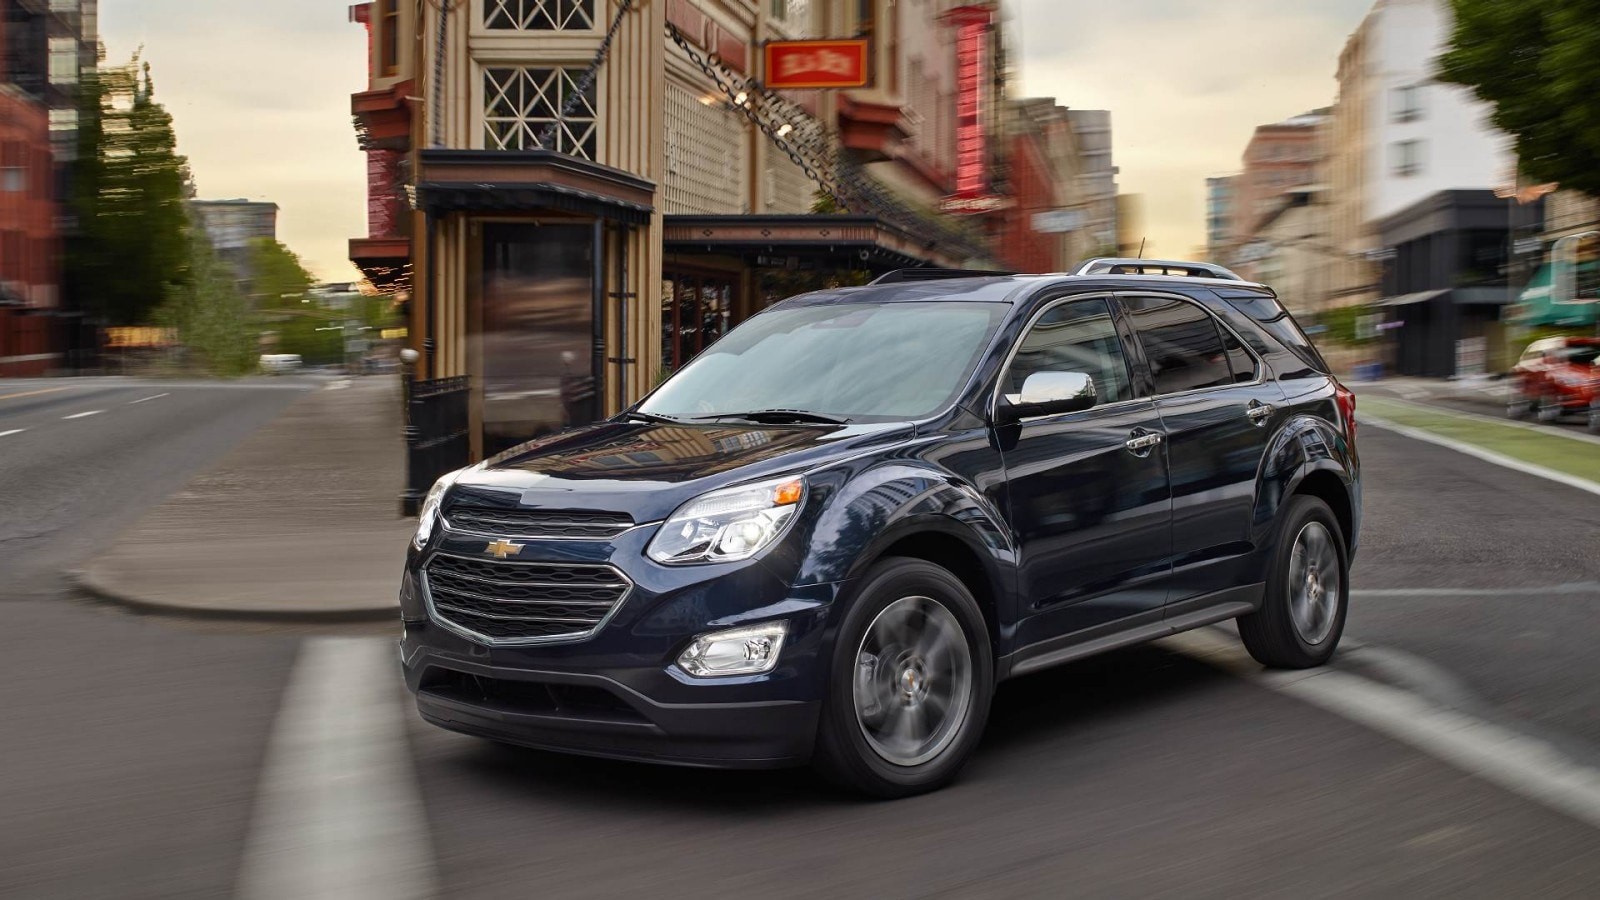 2016 Chevy Equinox for sale in Cincinnati